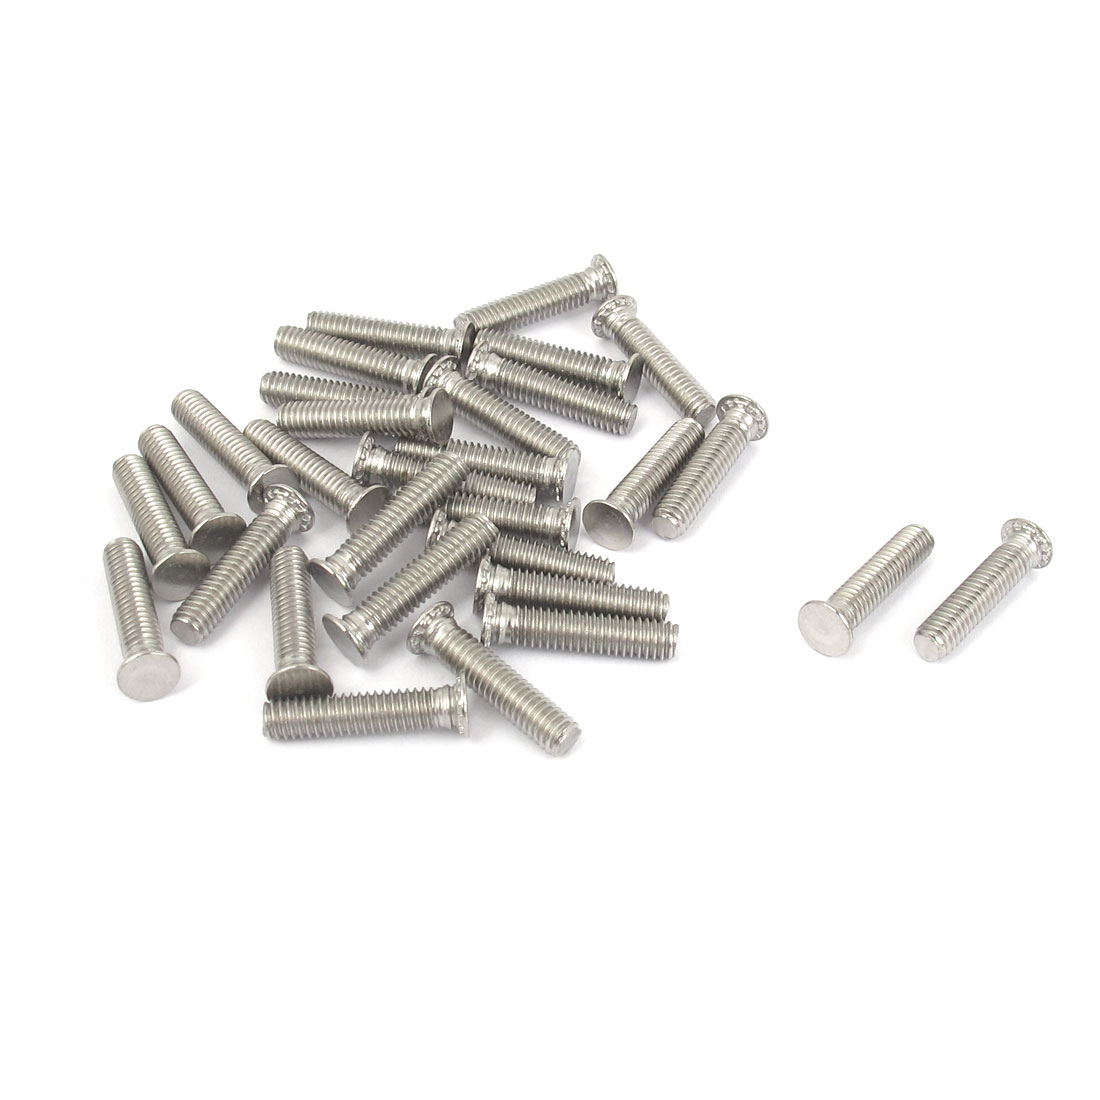 M4x18mm Flush Head Stainless Steel Self Clinching Threaded Studs Fastener 30pcs